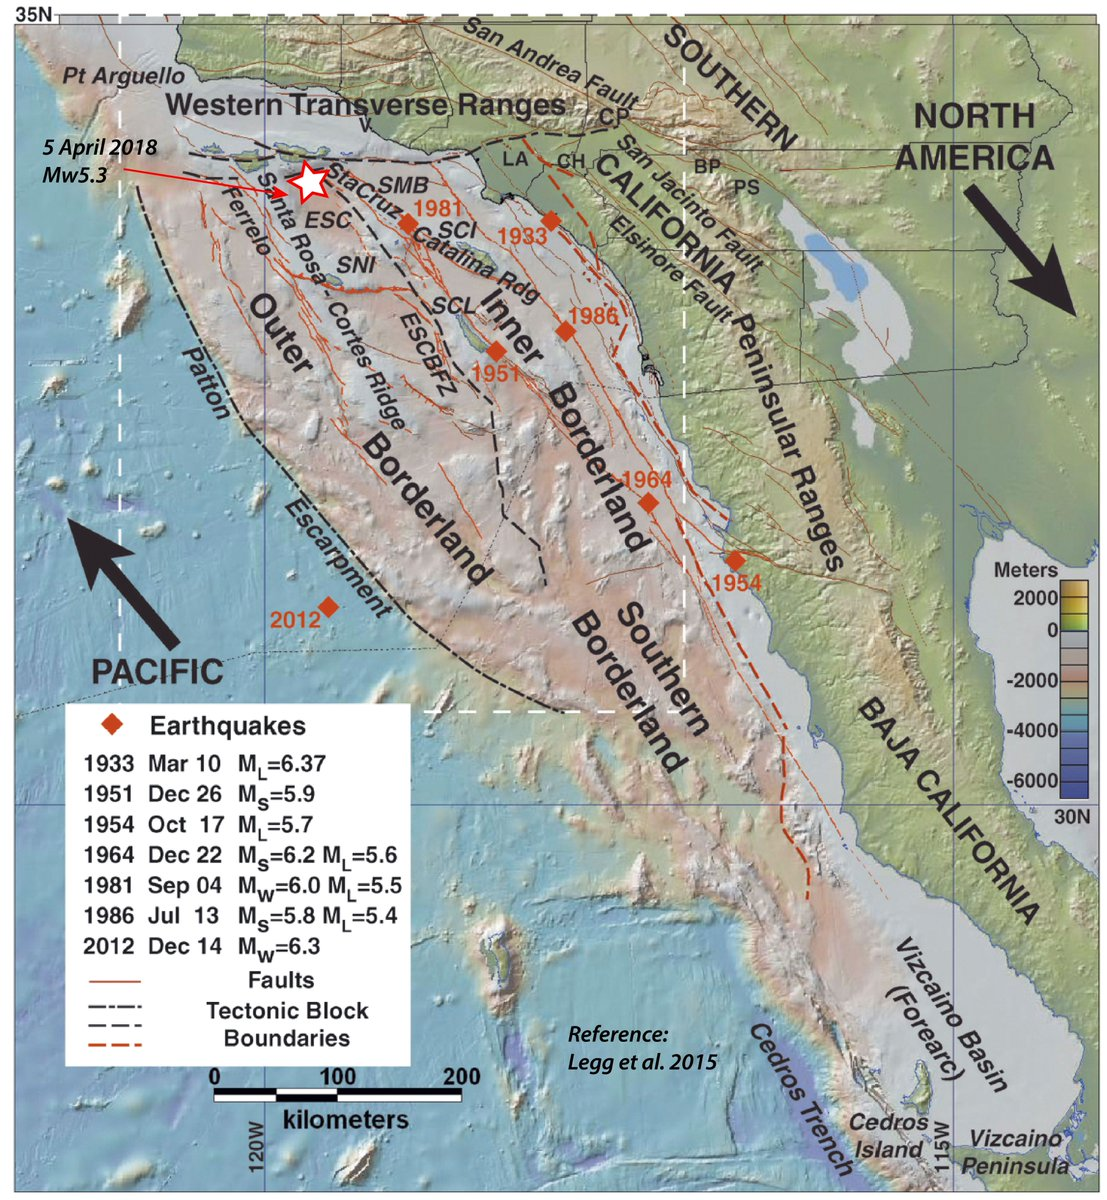 Ron Lin On Twitter This Map By Caltech Seismologist Egill